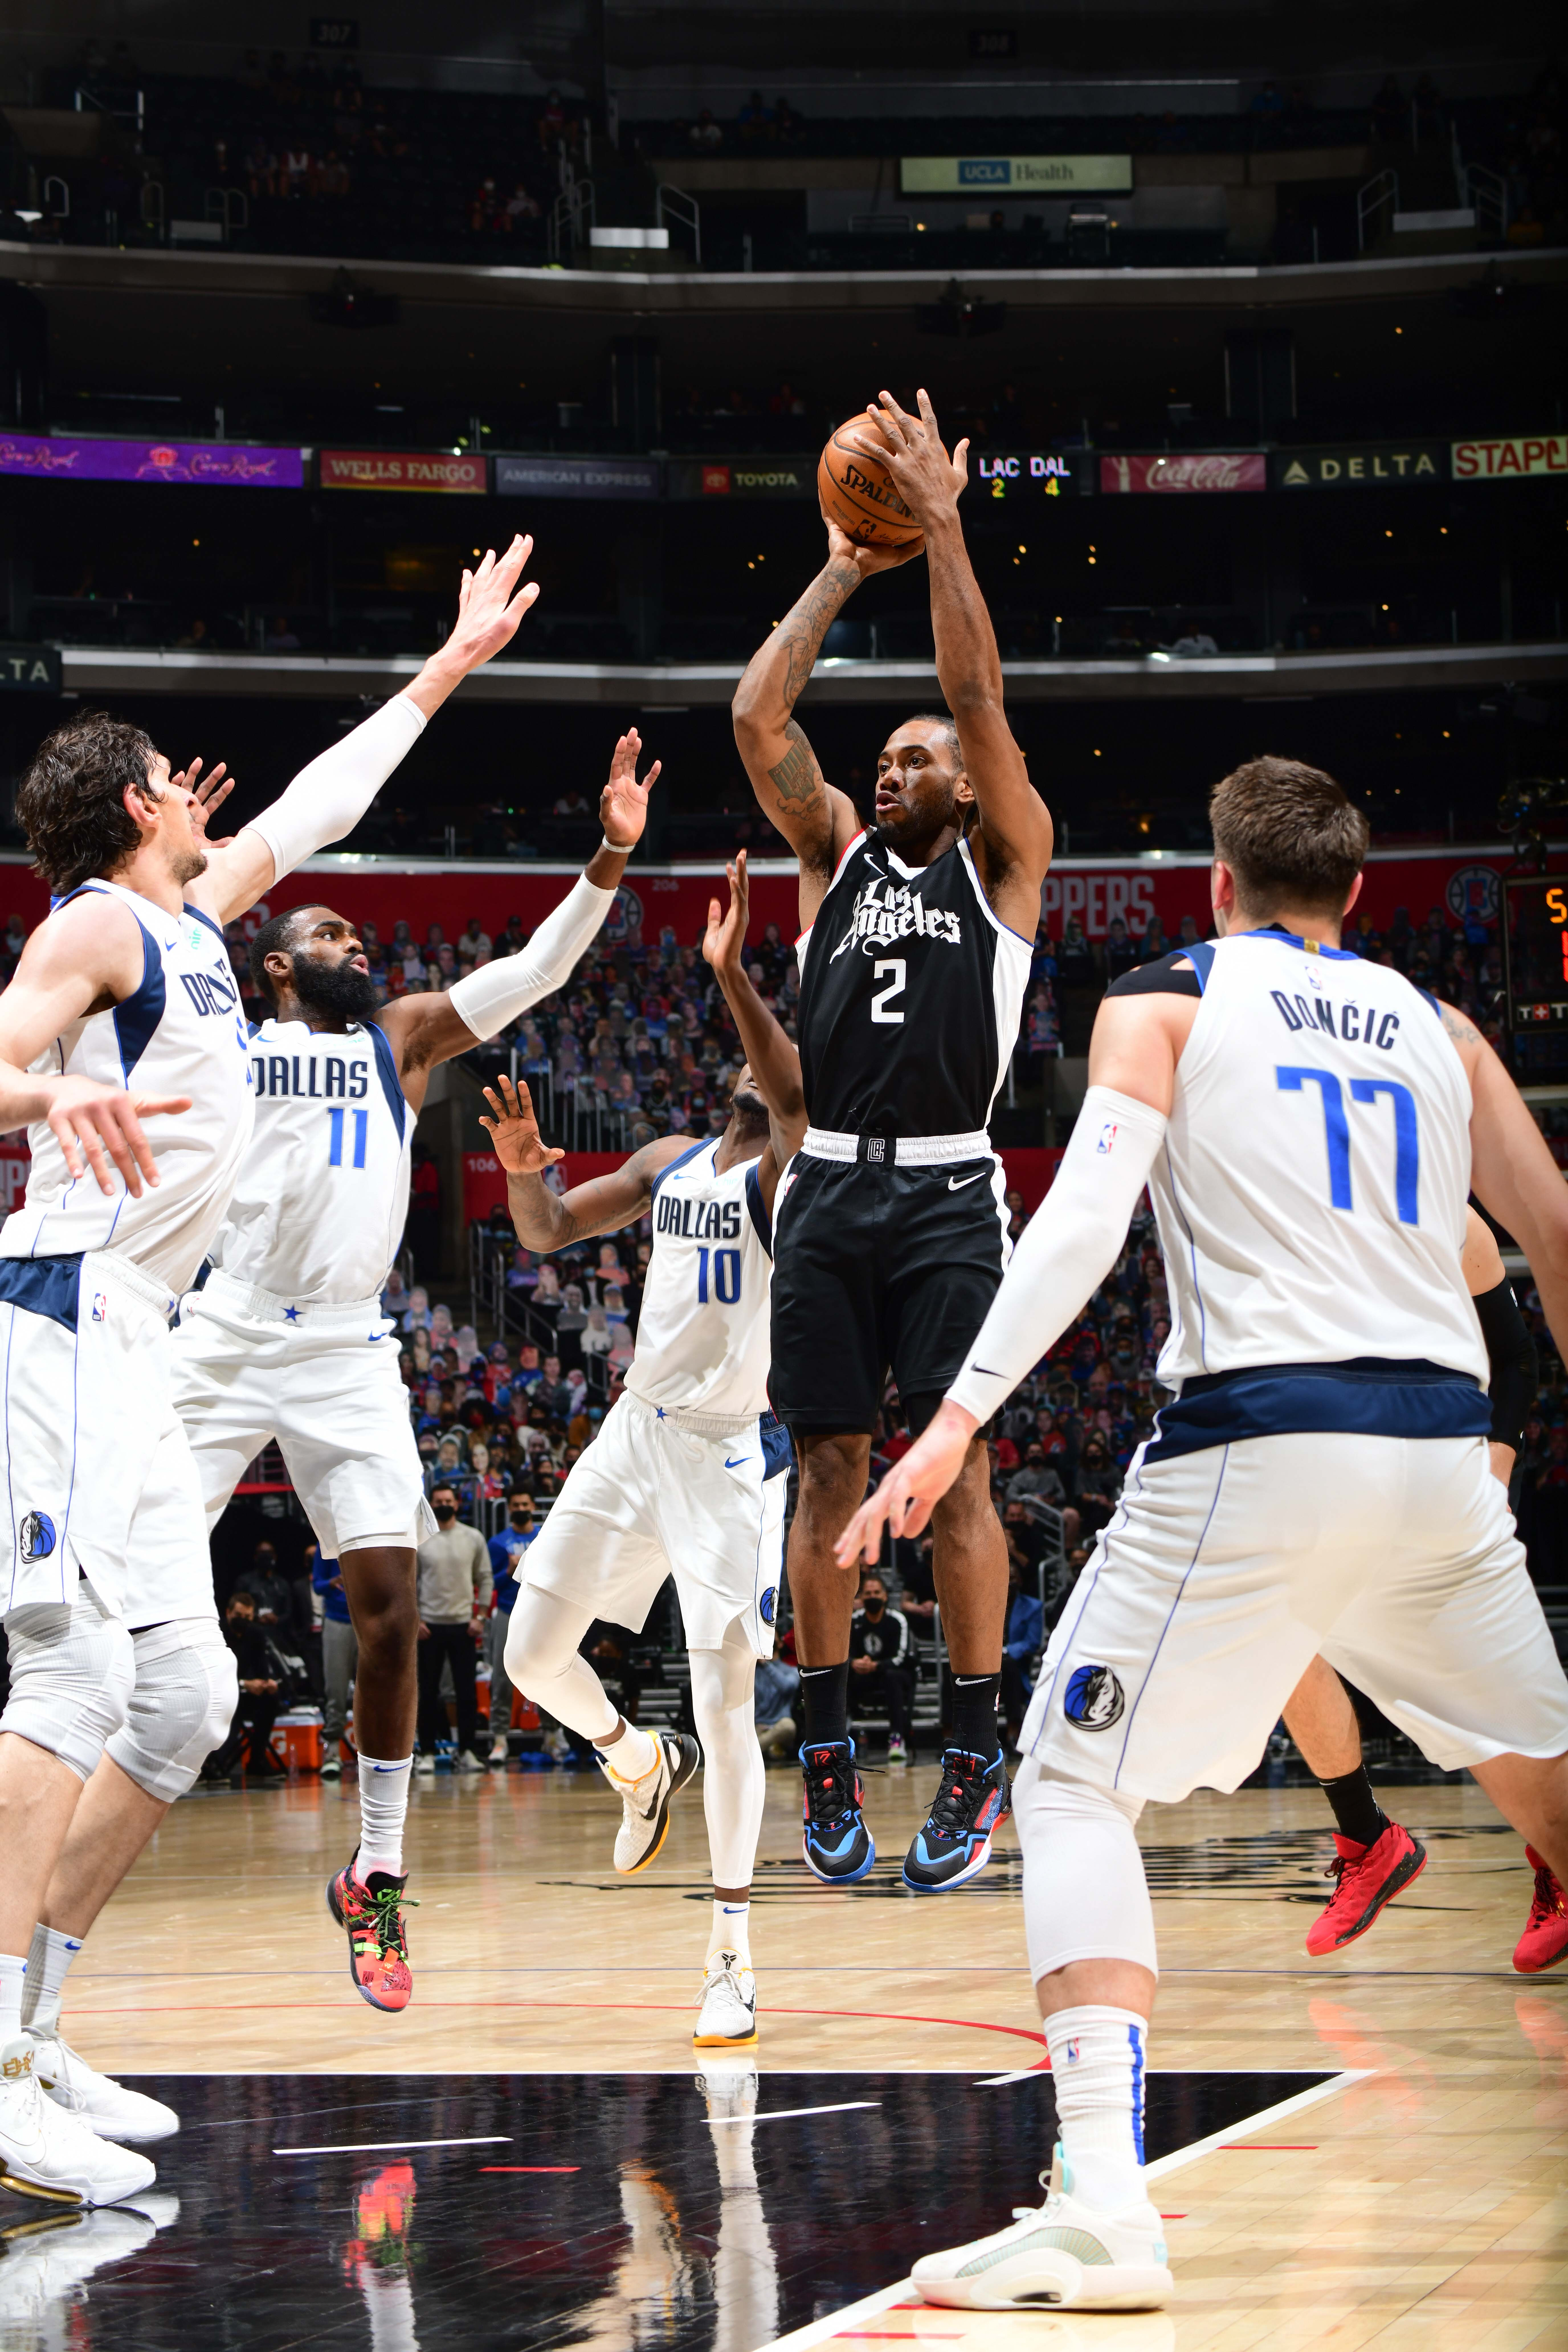 Kawhi Leonard #2 of the LA Clippers shoots the ball during the game against the Dallas Mavericks during Round 1, Game 5 of the 2021 NBA Playoffs on June 2, 2021 at STAPLES Center in Los Angeles, California.